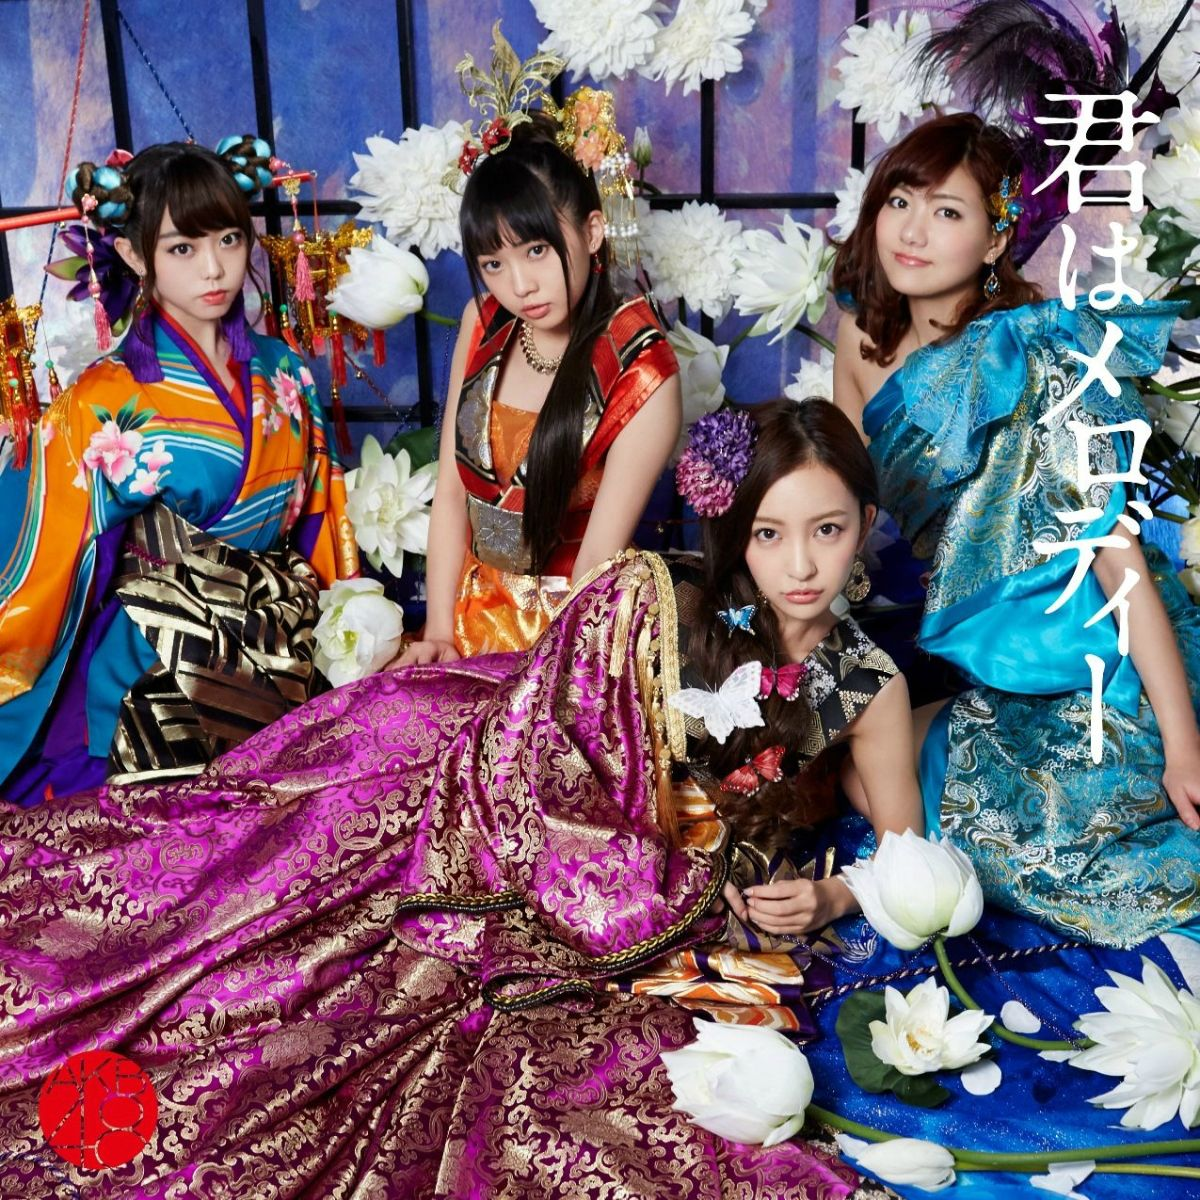 Download Anime Orange Sub Indo: [PV SUB] HKT48 - Make Noise (Sub Indo / Eng Sub)